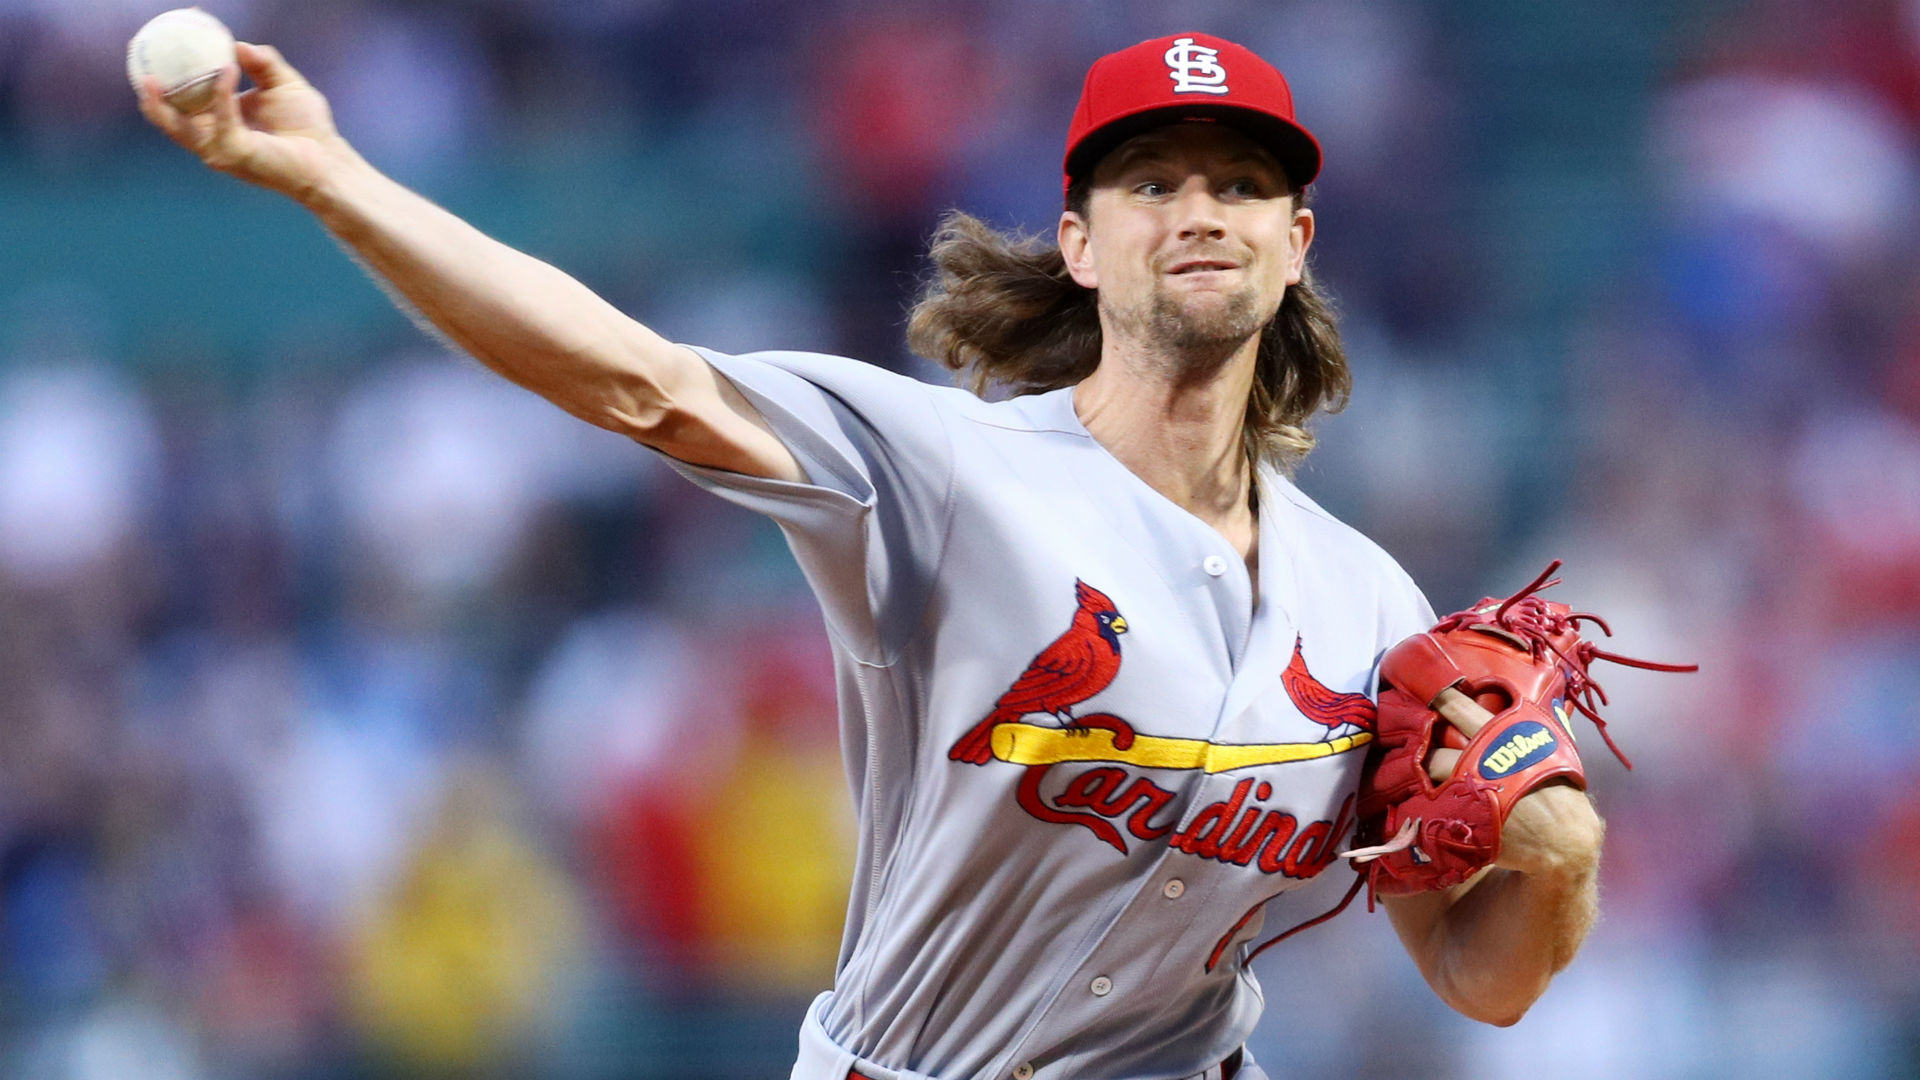 Mariners get SP Leake from Cardinals